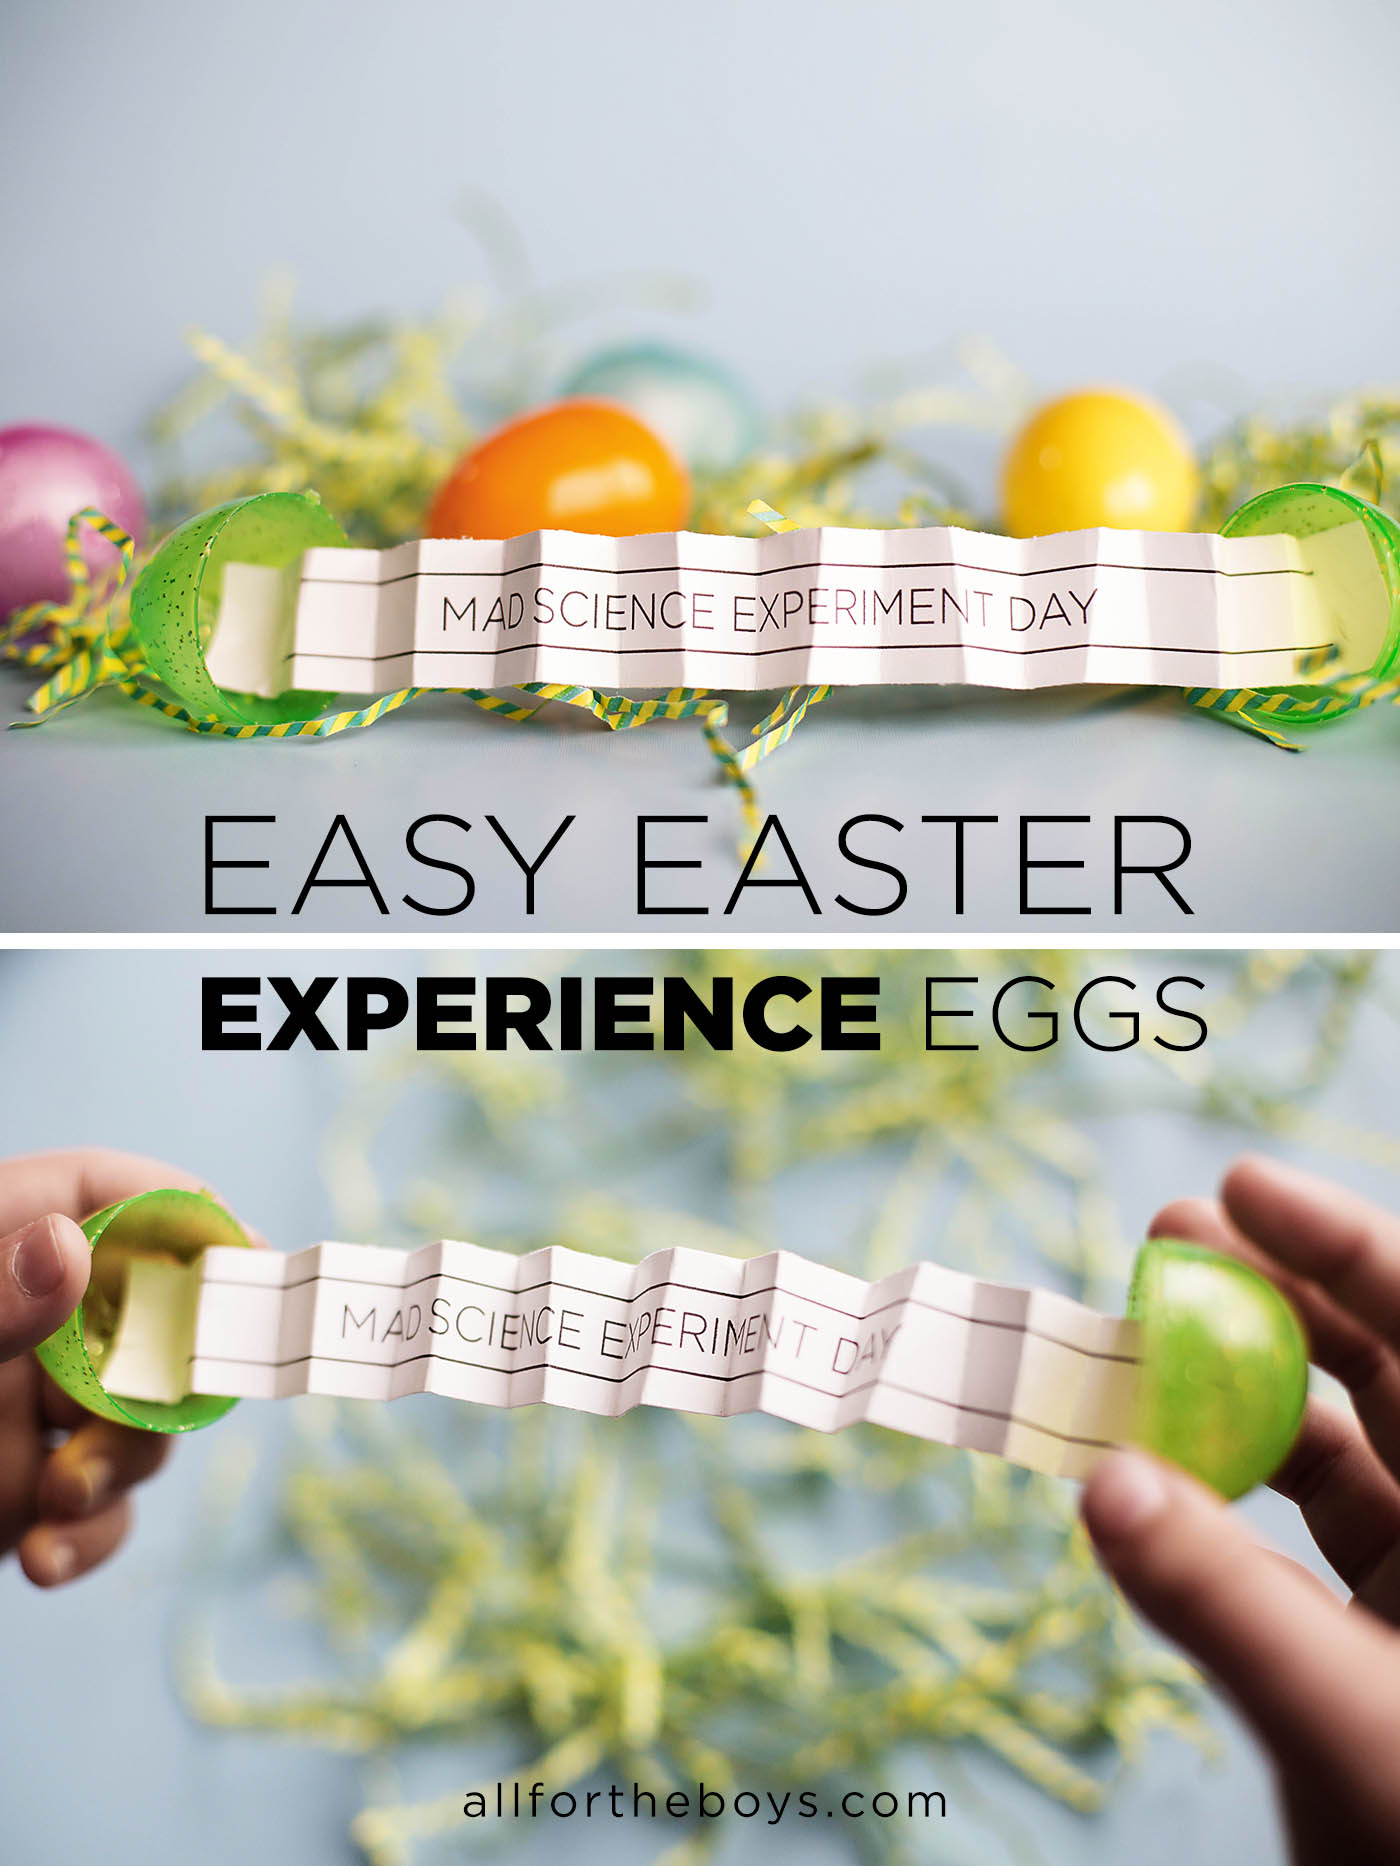 Easy Easter experience eggs - instead of candy or toys